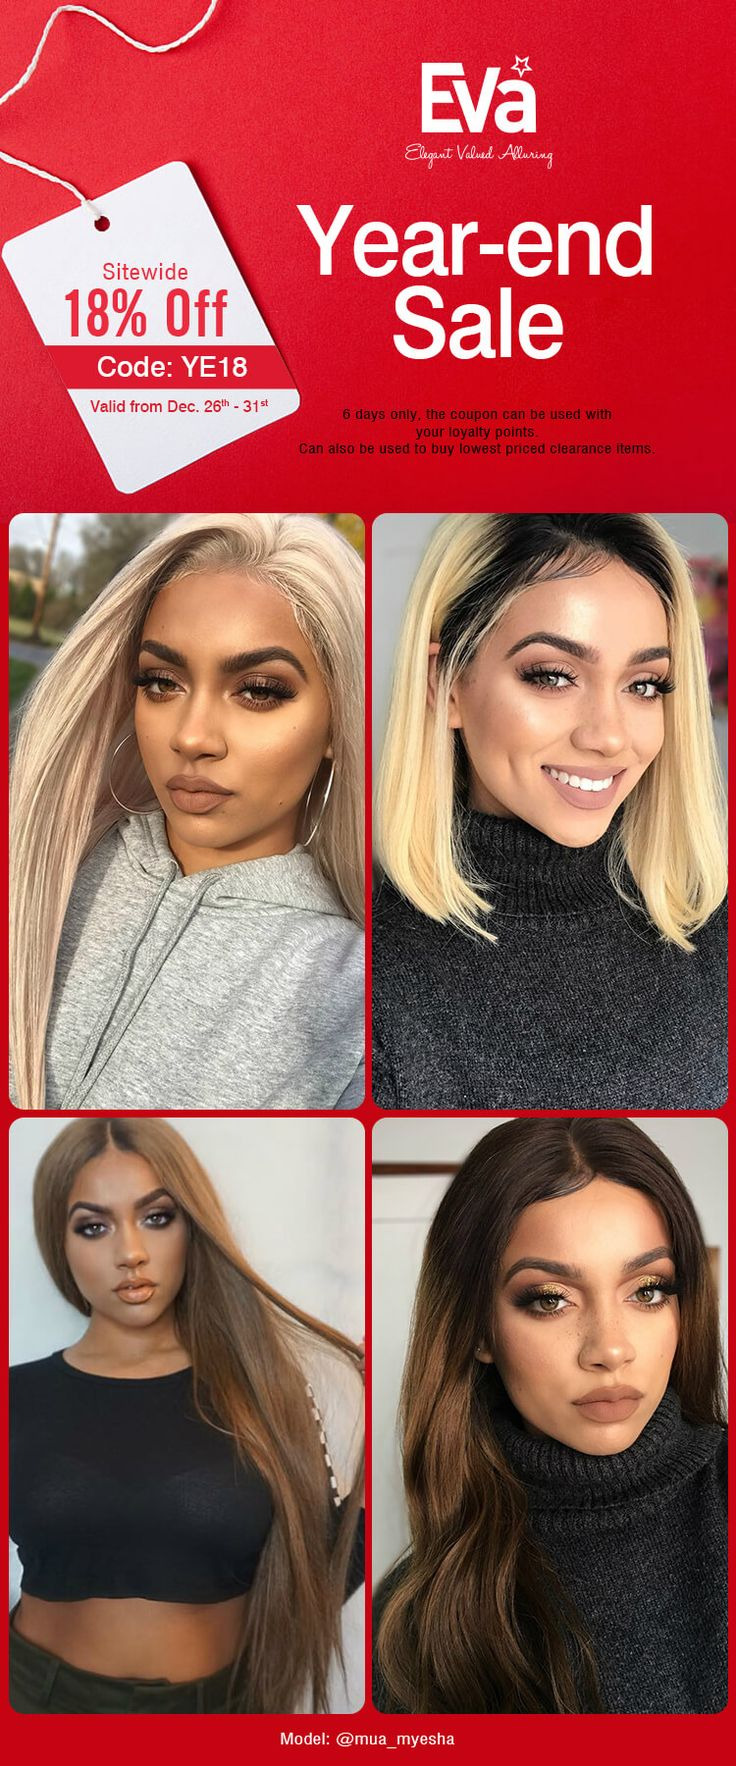 Year--end sale now!18% off sitewide. Shop for your new year's look at EvaWigs.com #wig#hair#hairstyle#wavyhair#blondehair#brownhair#hairstyle#sale#humanhair#longhair#bob#lob